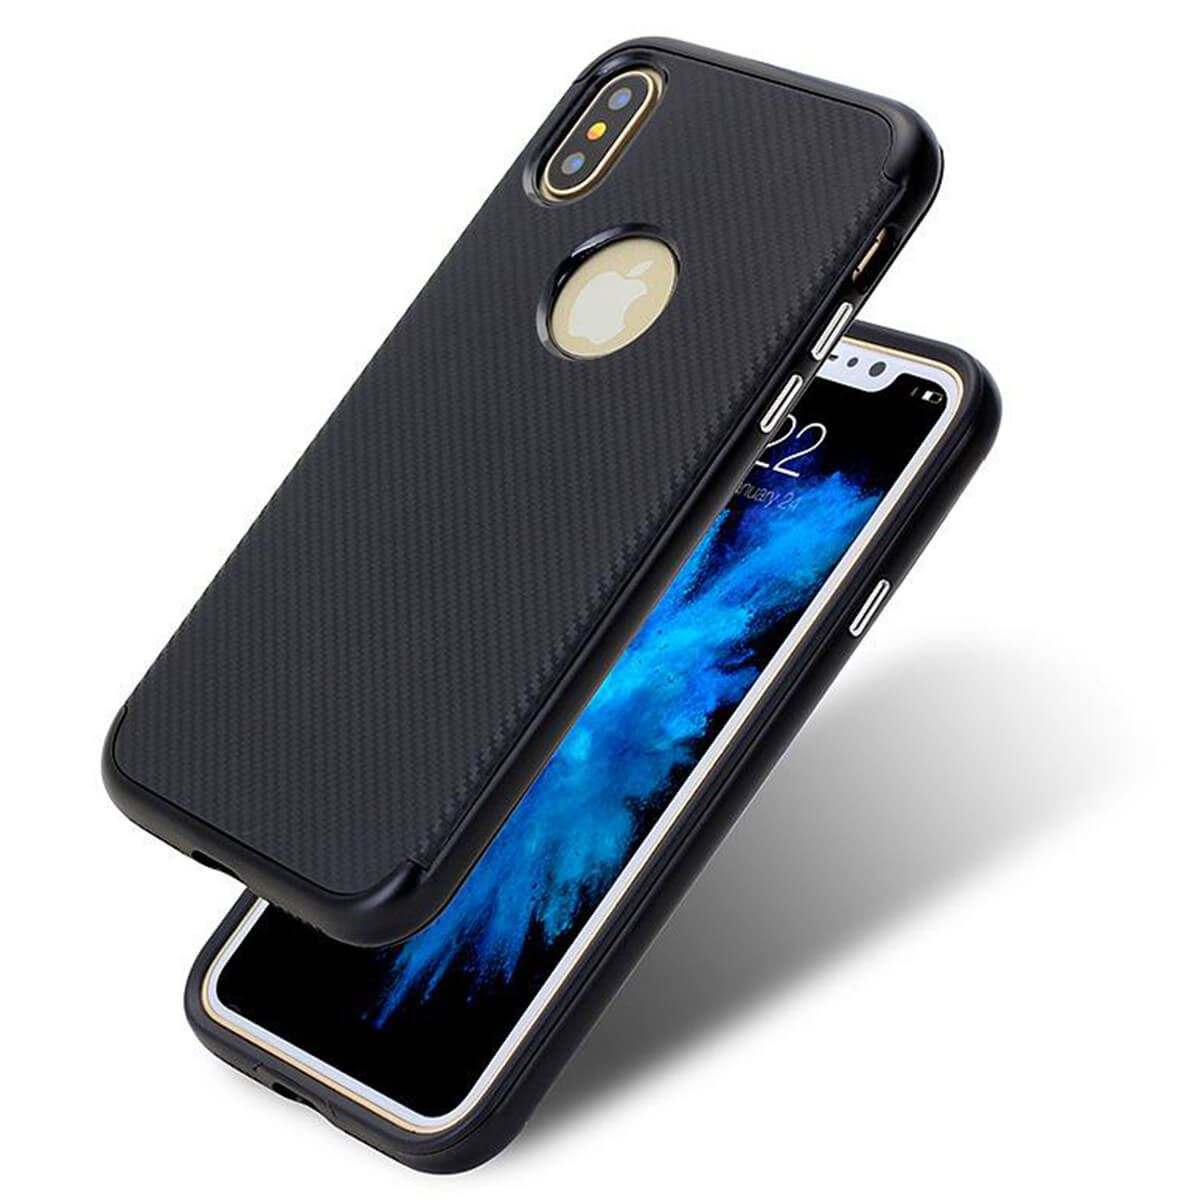 Case-For-Apple-iPhone-10-X-8-7-6s-5s-Luxury-Carbon-Fibre-Bumper-Hard-Back-Cover thumbnail 8